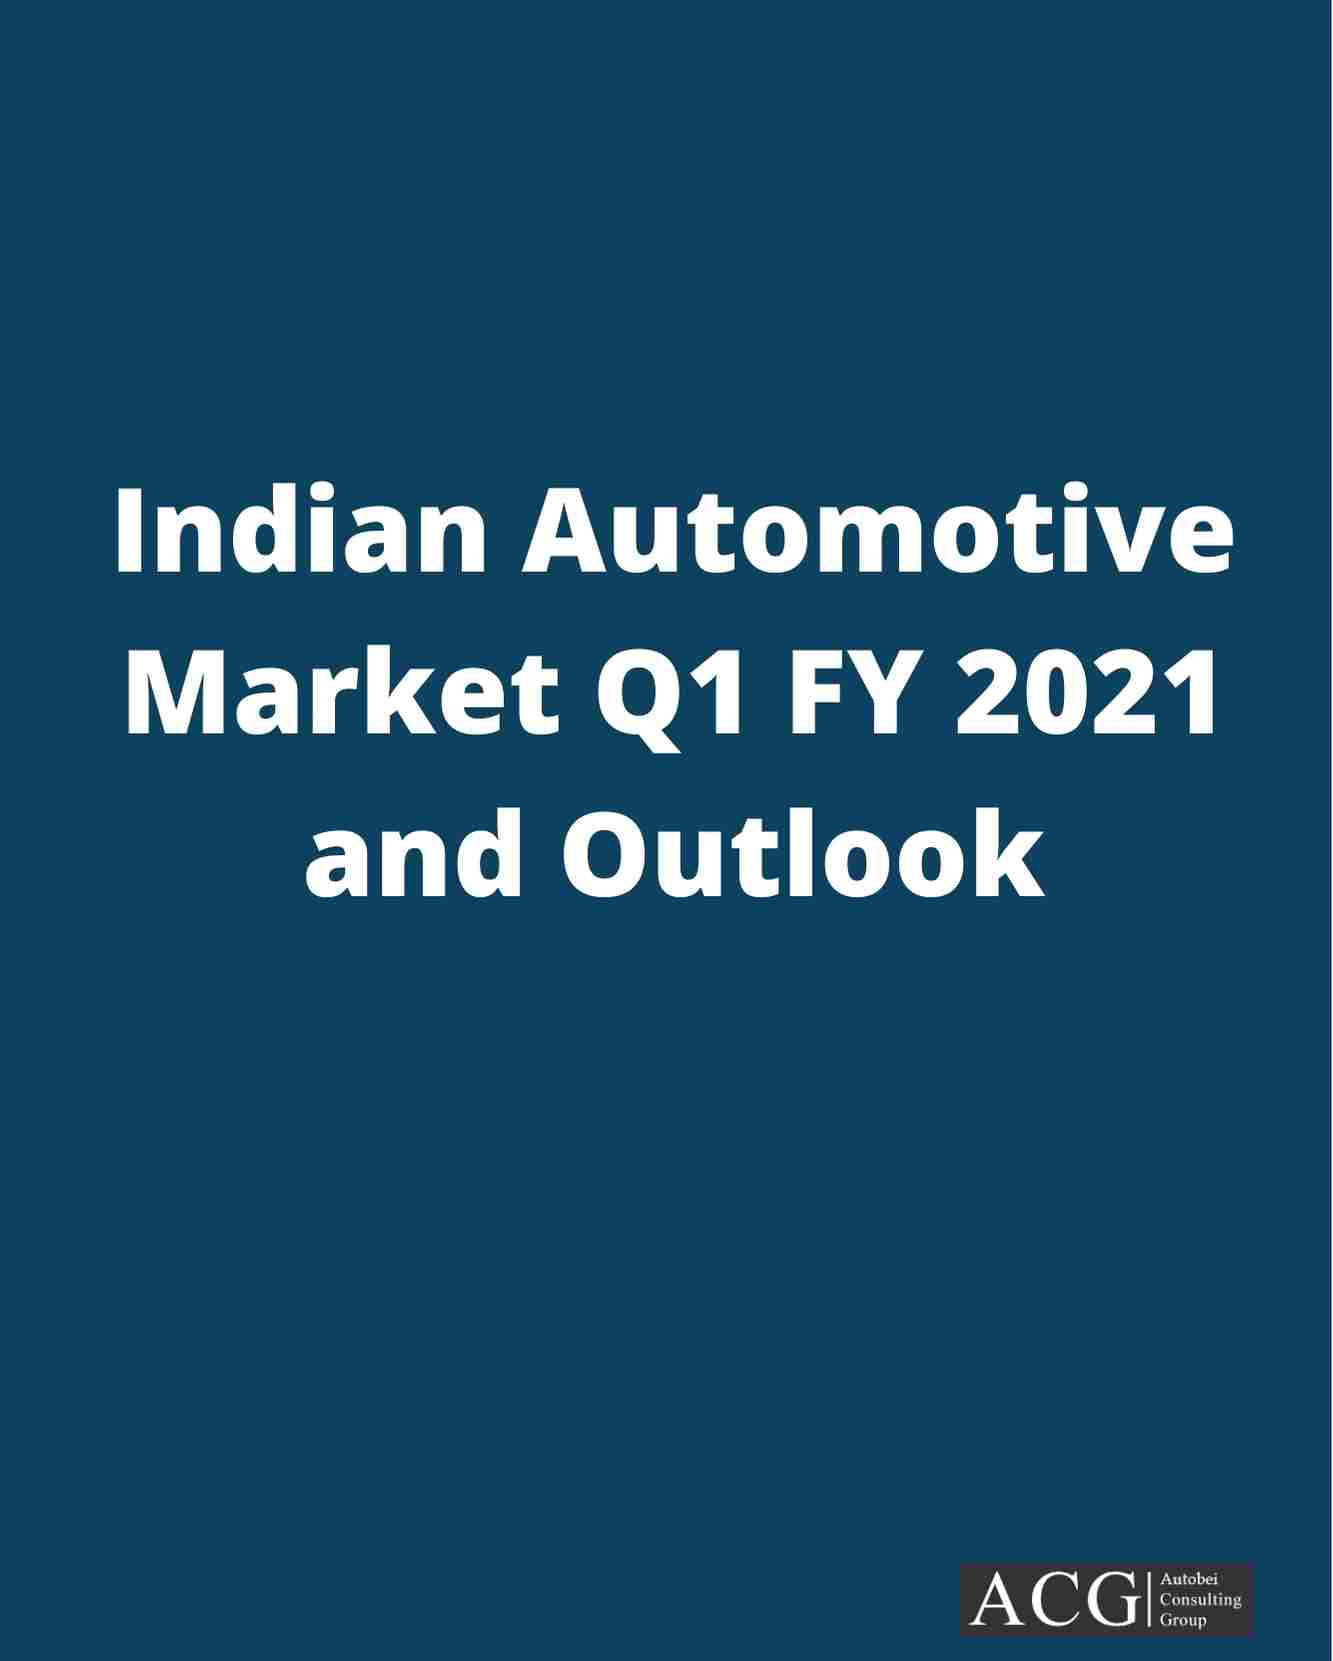 Indian Automotive Market Q1 FY 2021 and Outlook